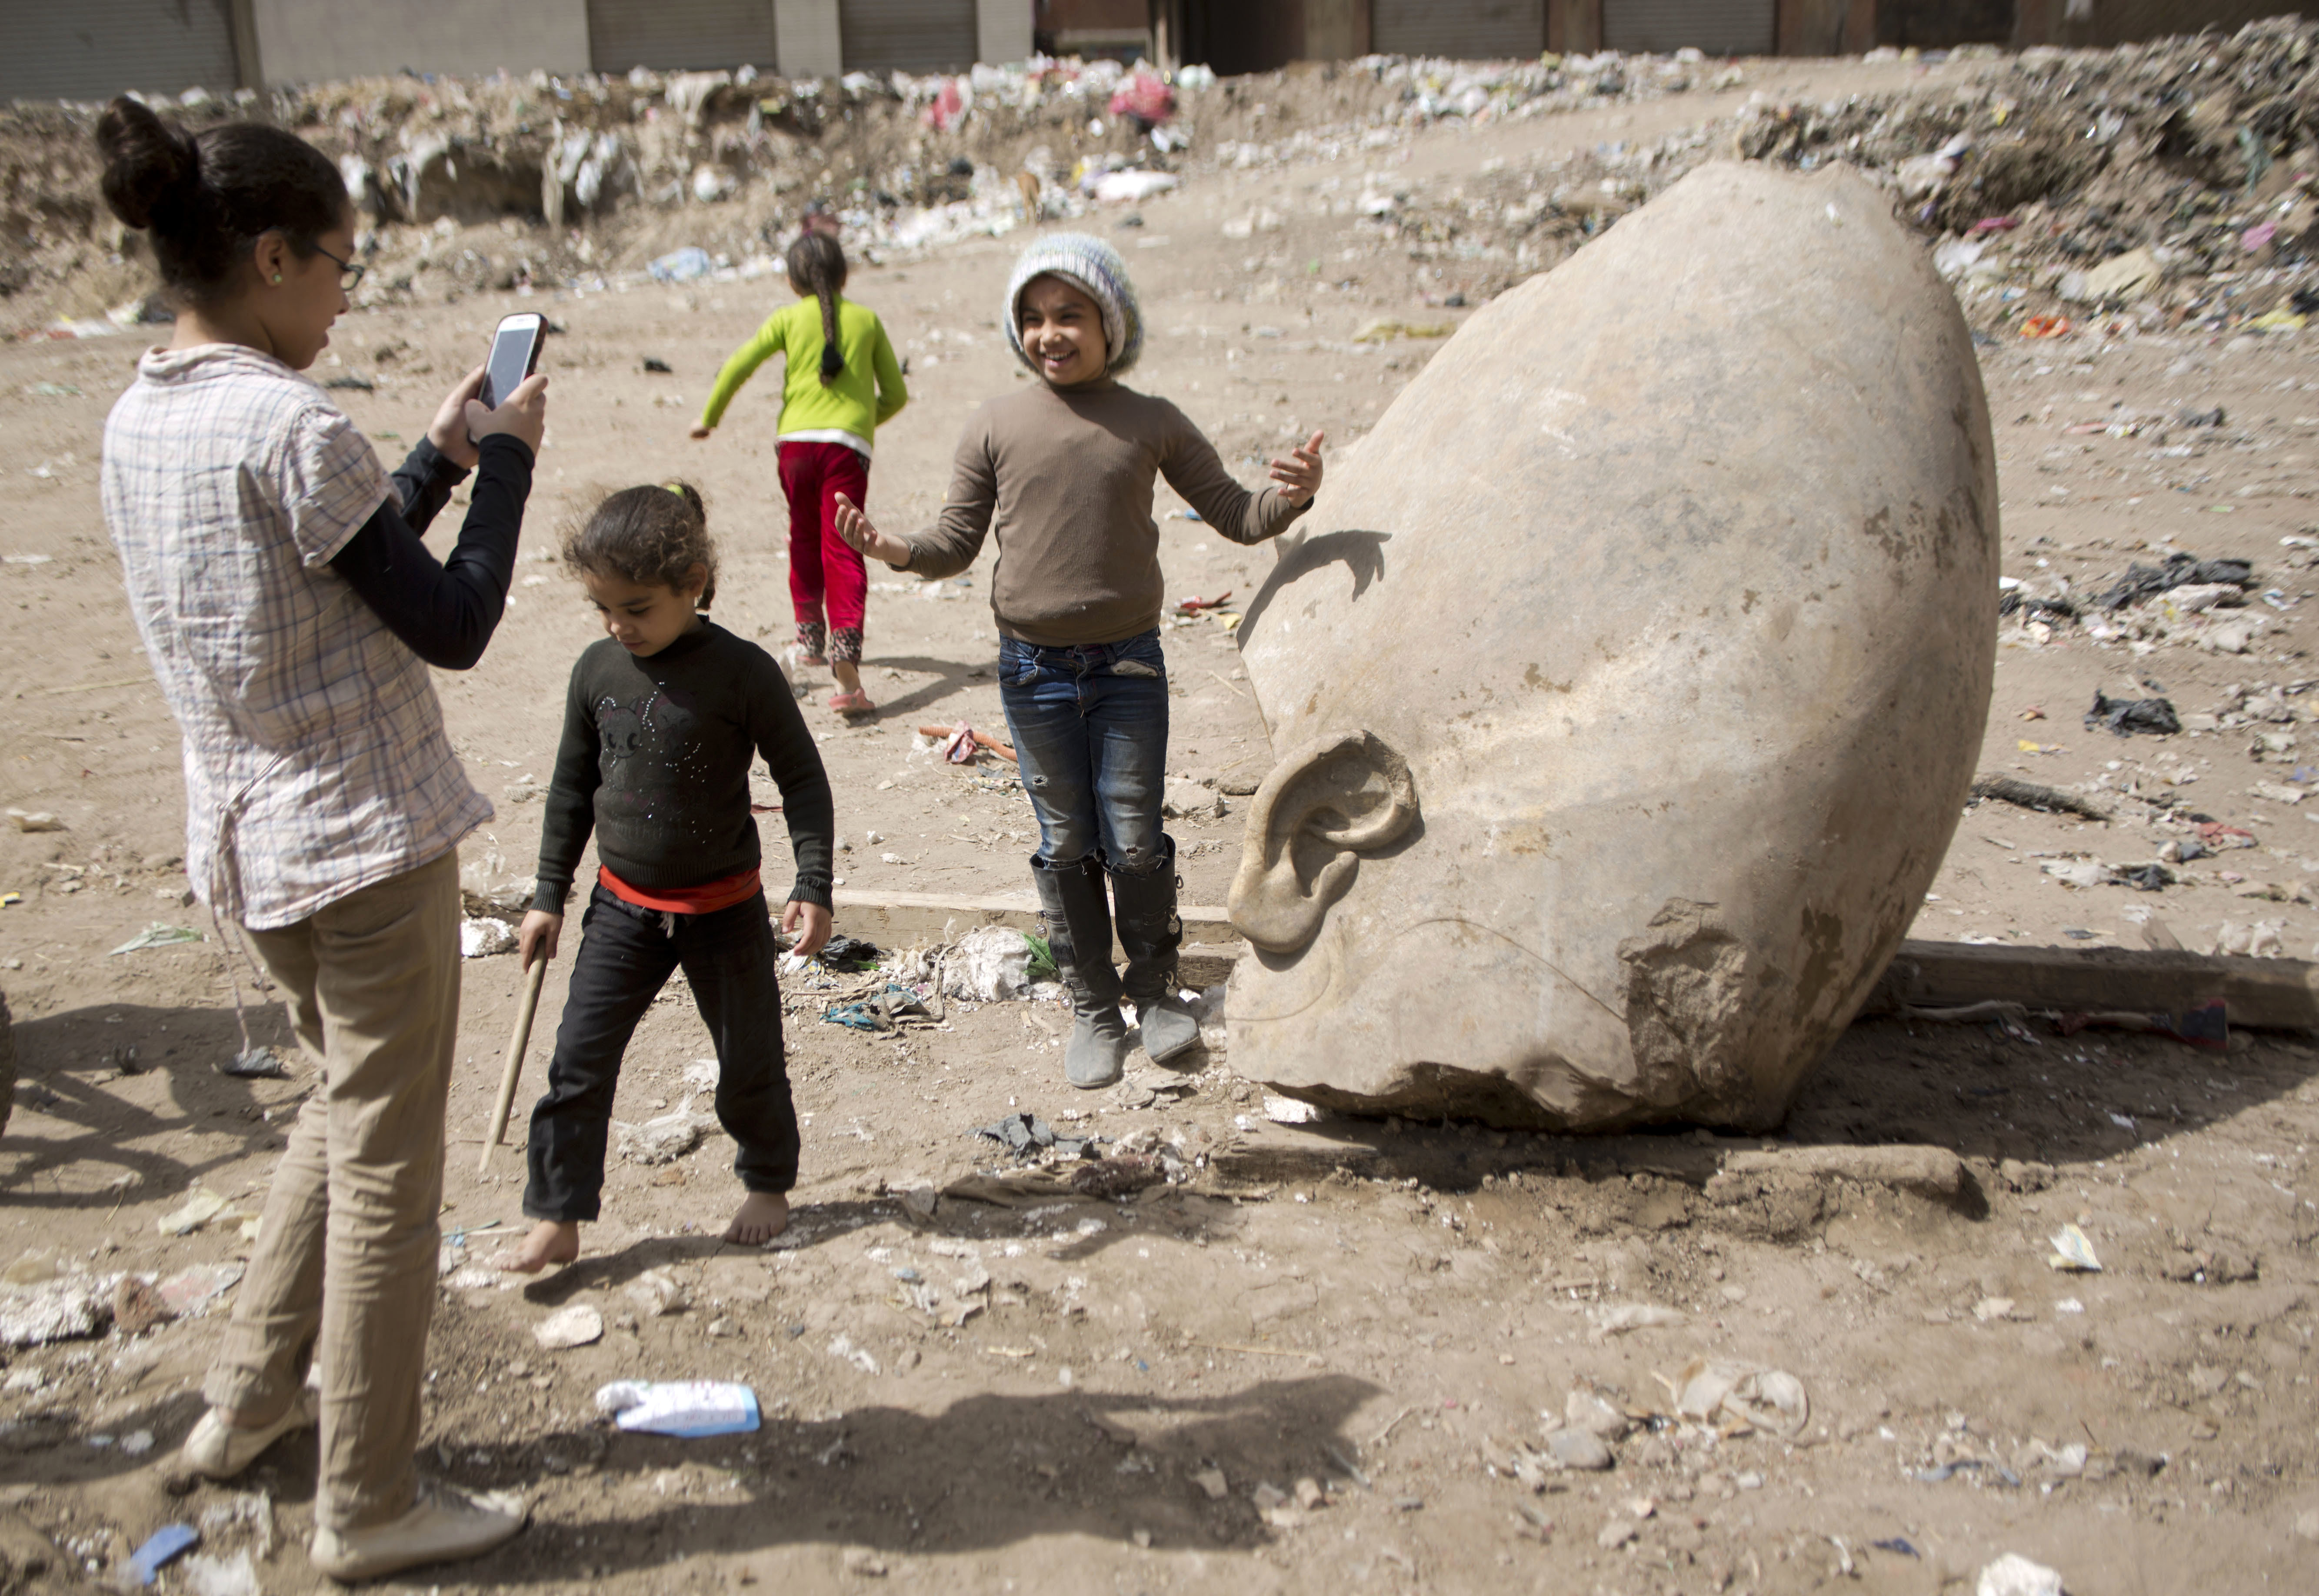 A child poses for a picture past a recently discovered statue in a Cairo slum that may be of pharaoh Ramses II, in Cairo, Egypt on March 10, 2017. (AP Photo/Amr Nabil)